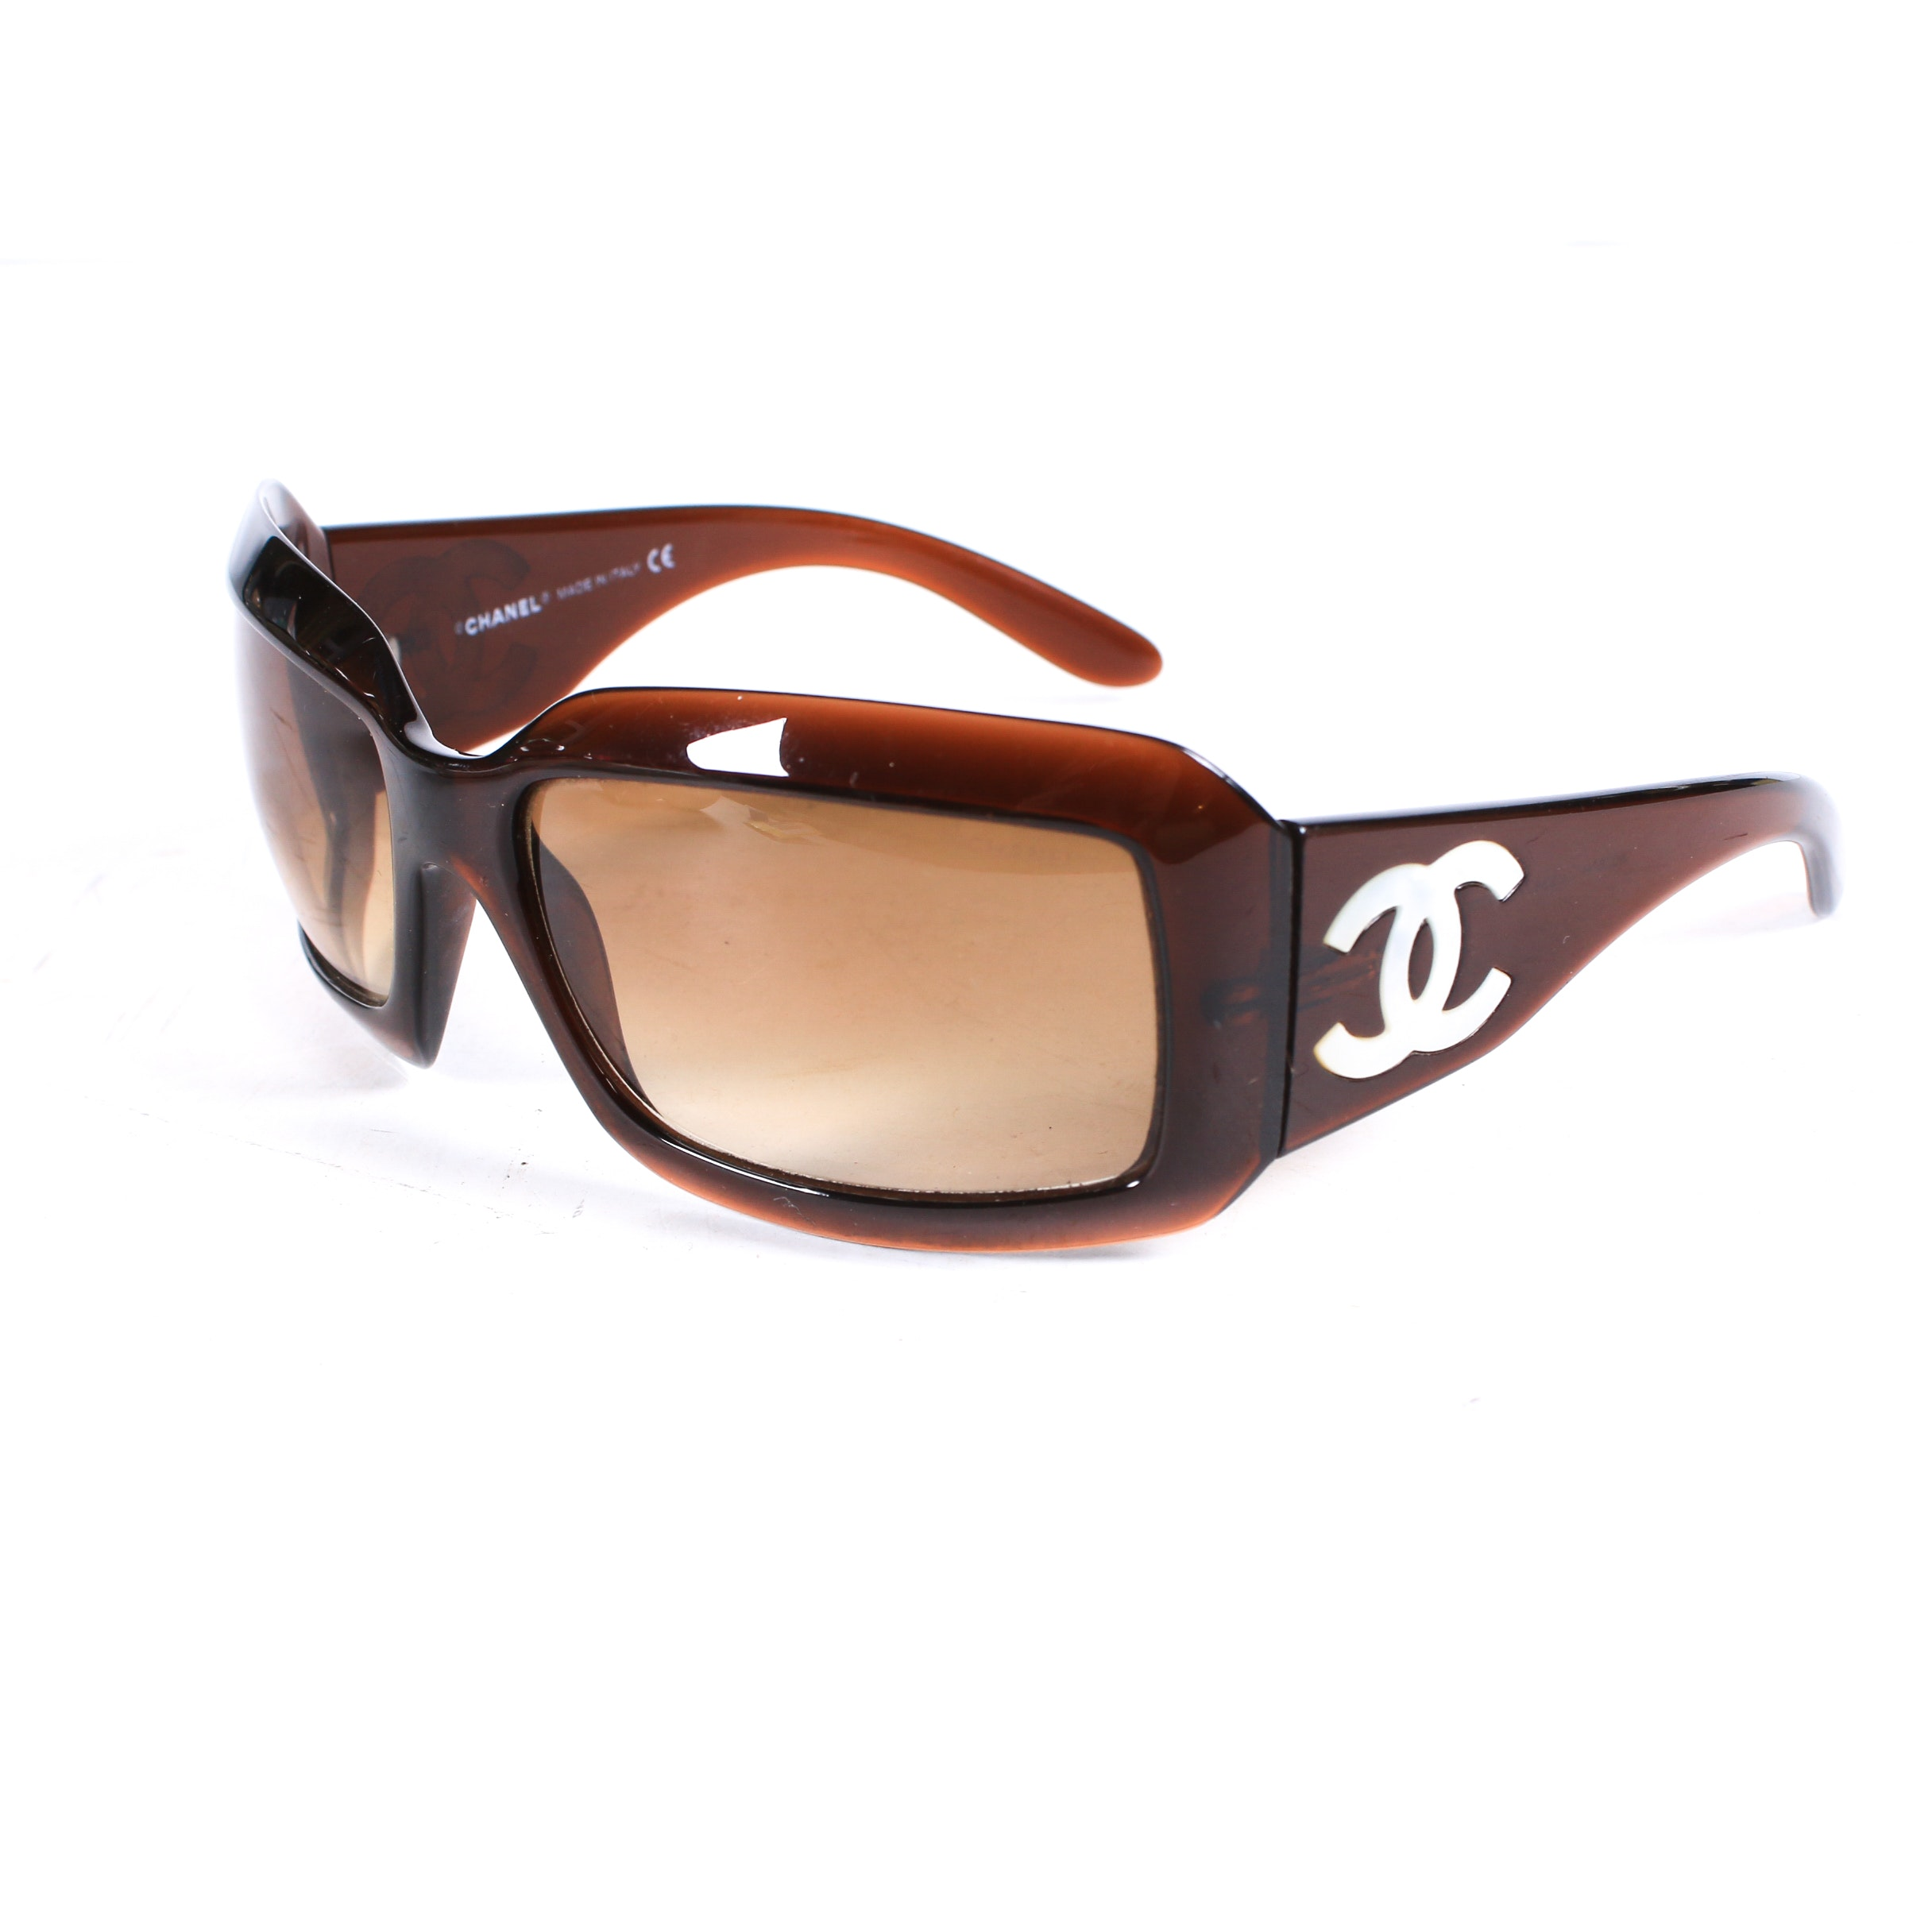 Chanel 5076-H Brown and Mother-of-Pearl CC Sunglasses